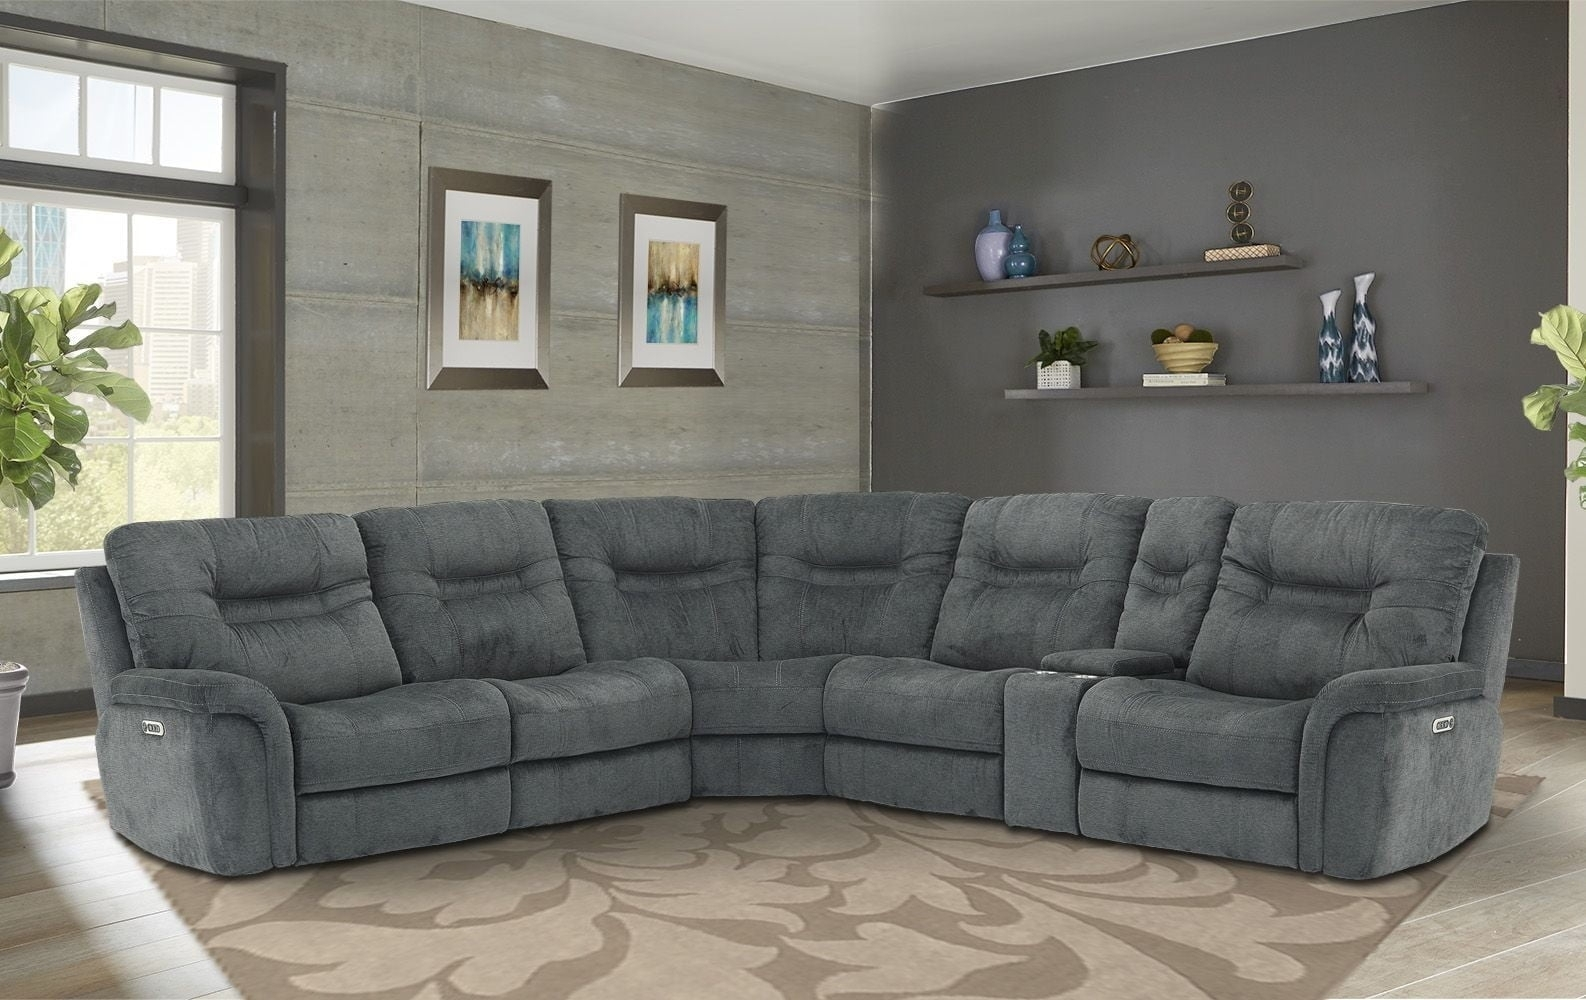 Shelton Polo Power Reclining Sectional With Power Headrest From Inside Denali Charcoal Grey 6 Piece Reclining Sectionals With 2 Power Headrests (View 22 of 25)